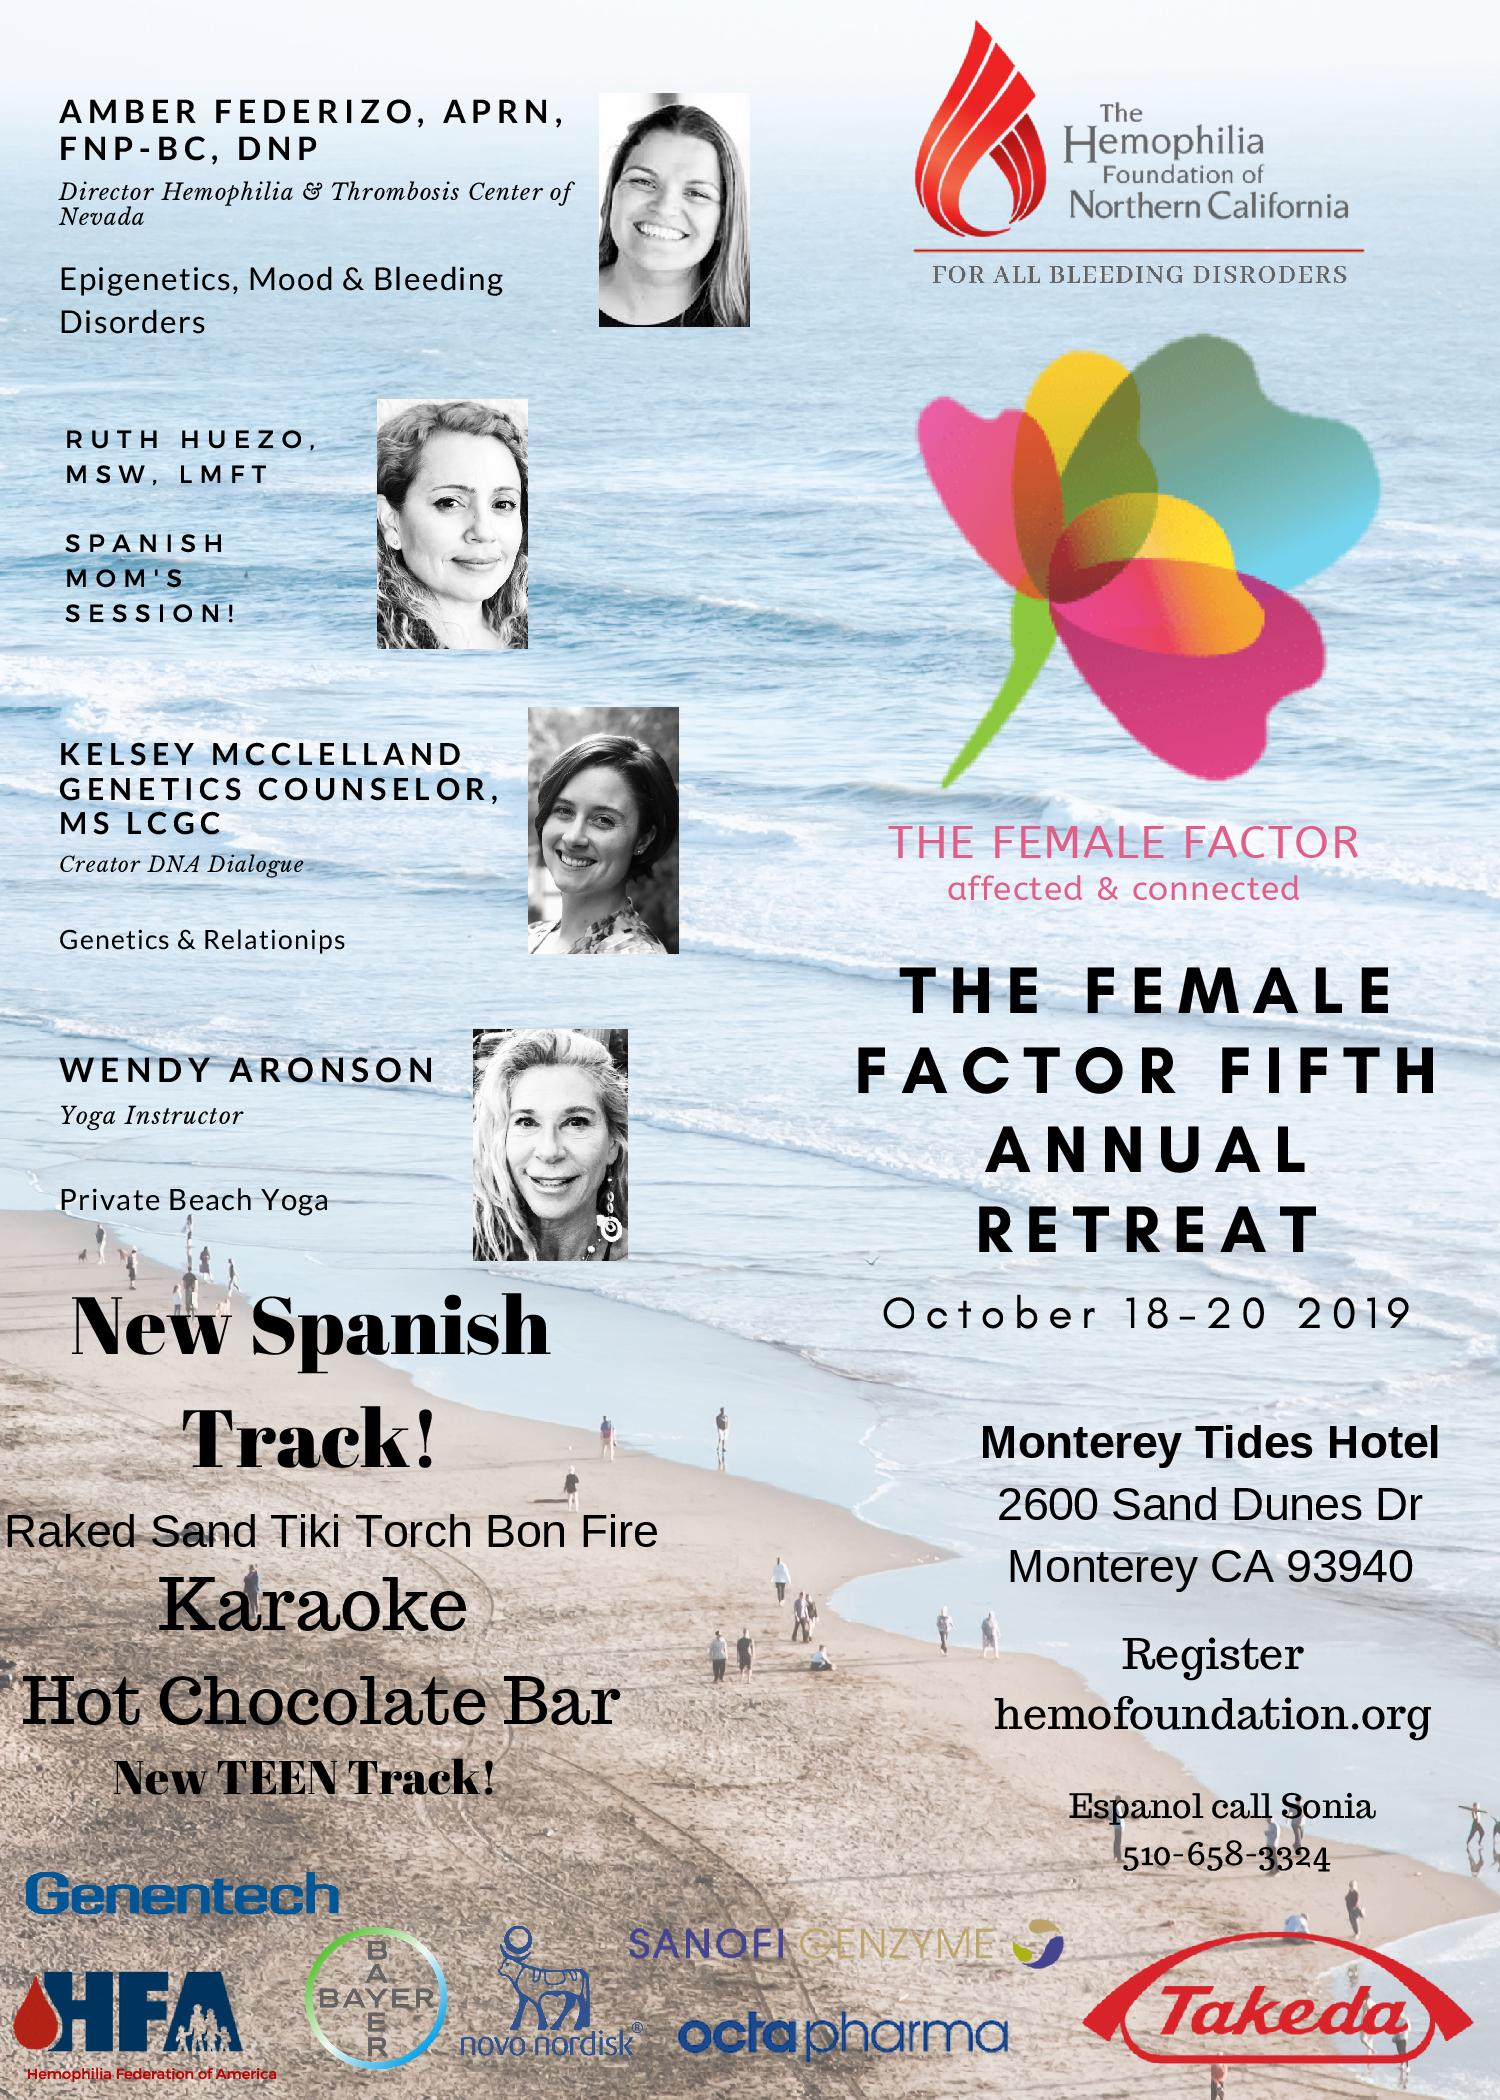 The Female Factor Women's Retreat 2019